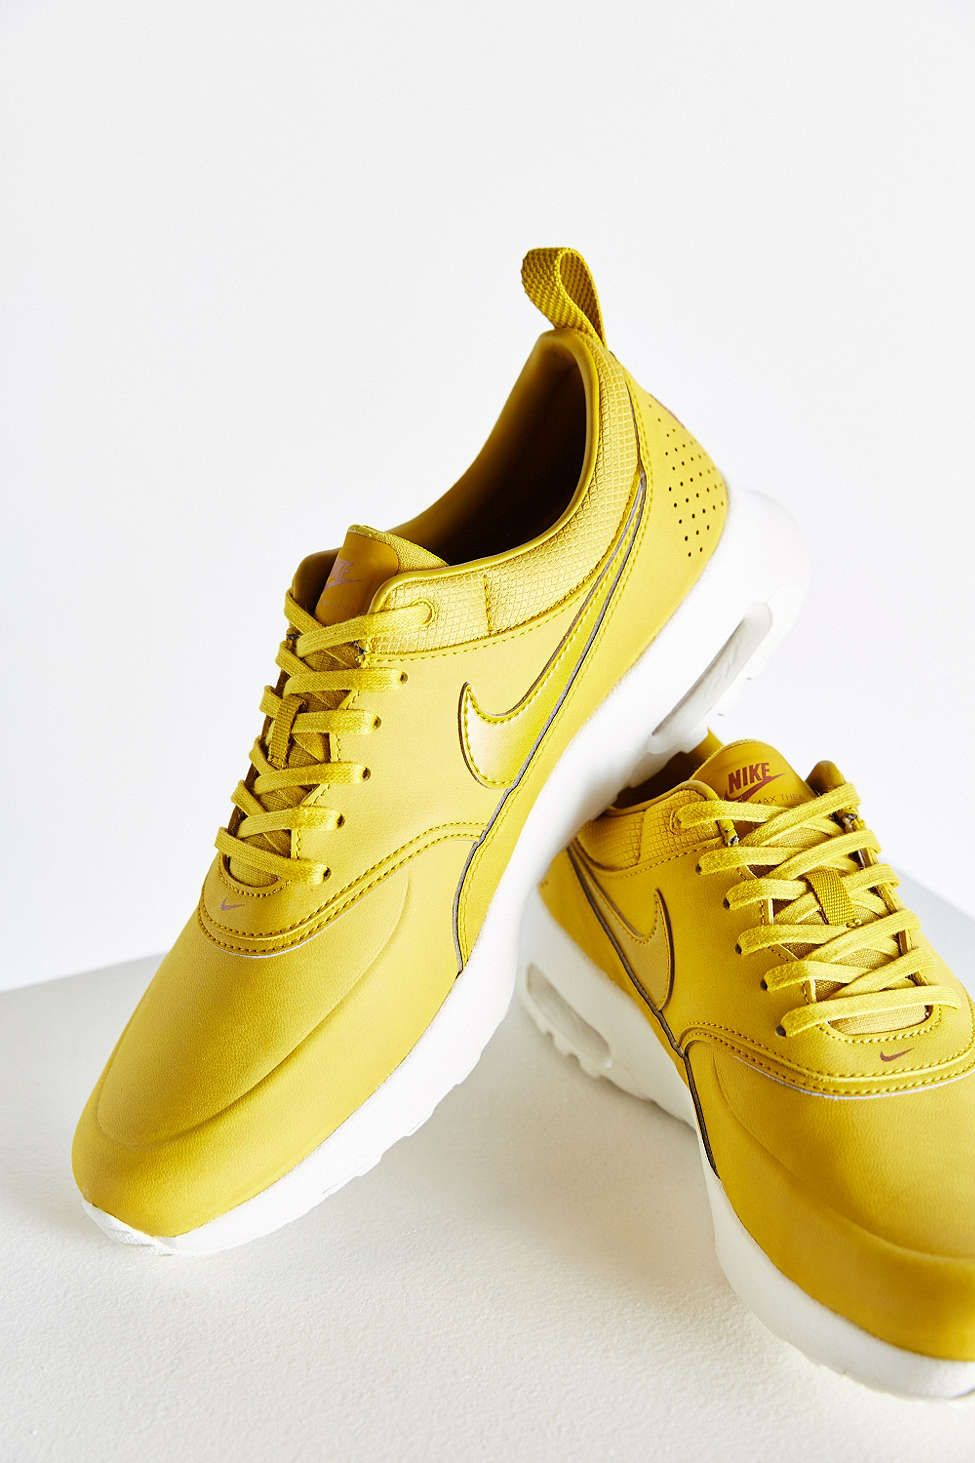 Nike Air Max Thea Premium Sneaker Urban Outfitters Zapatos